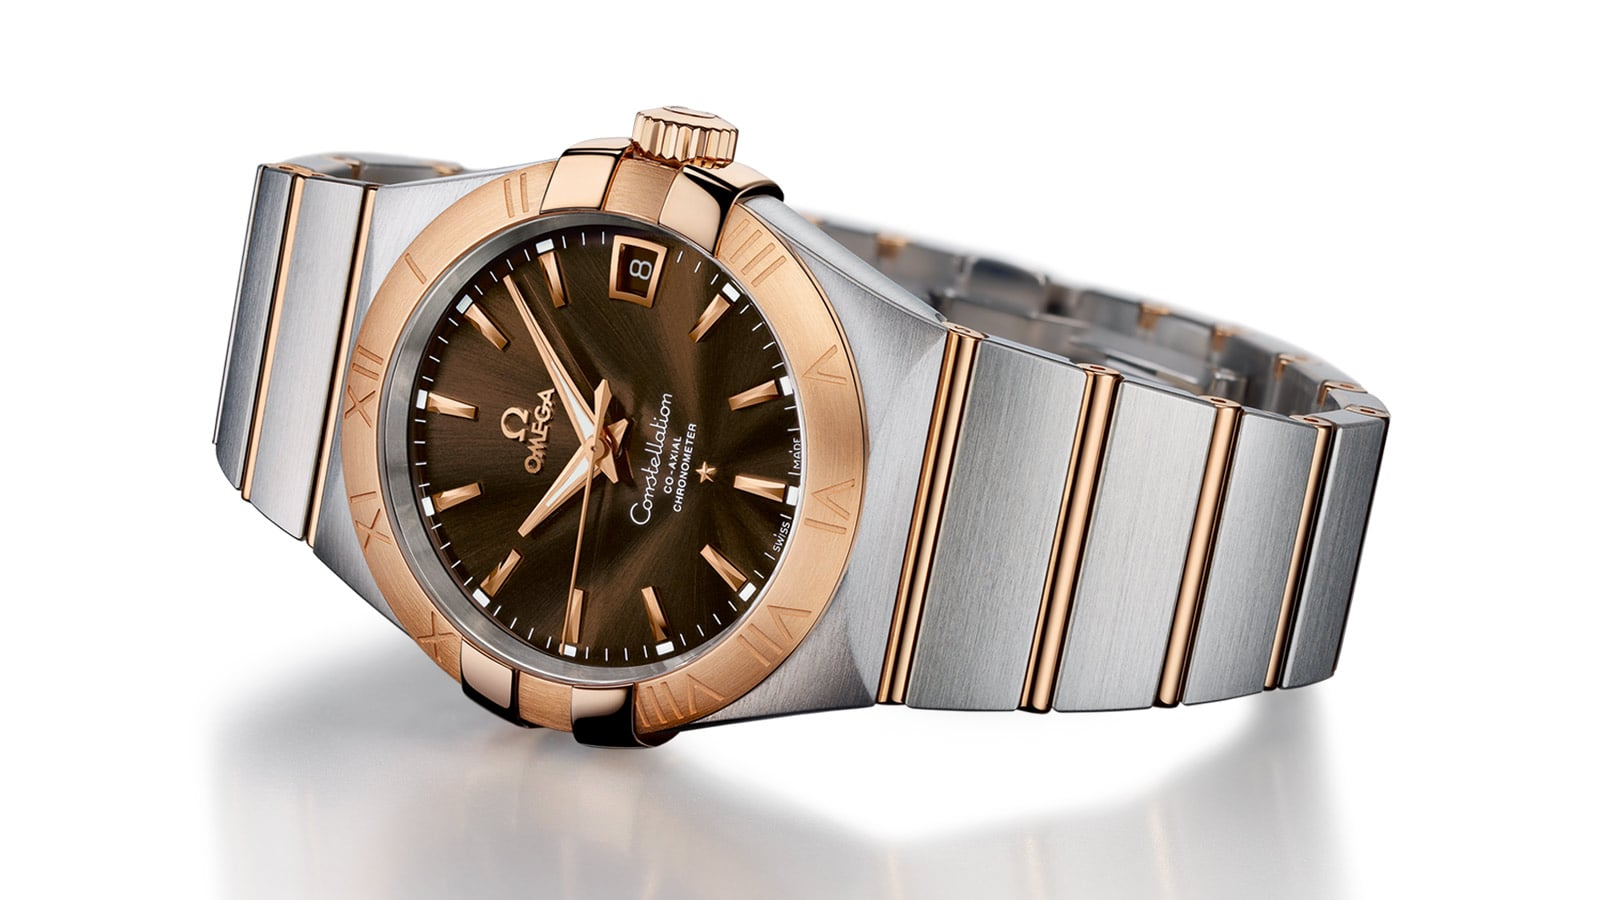 THE OMEGA CONSTELLATION GENTS' COLLECTION